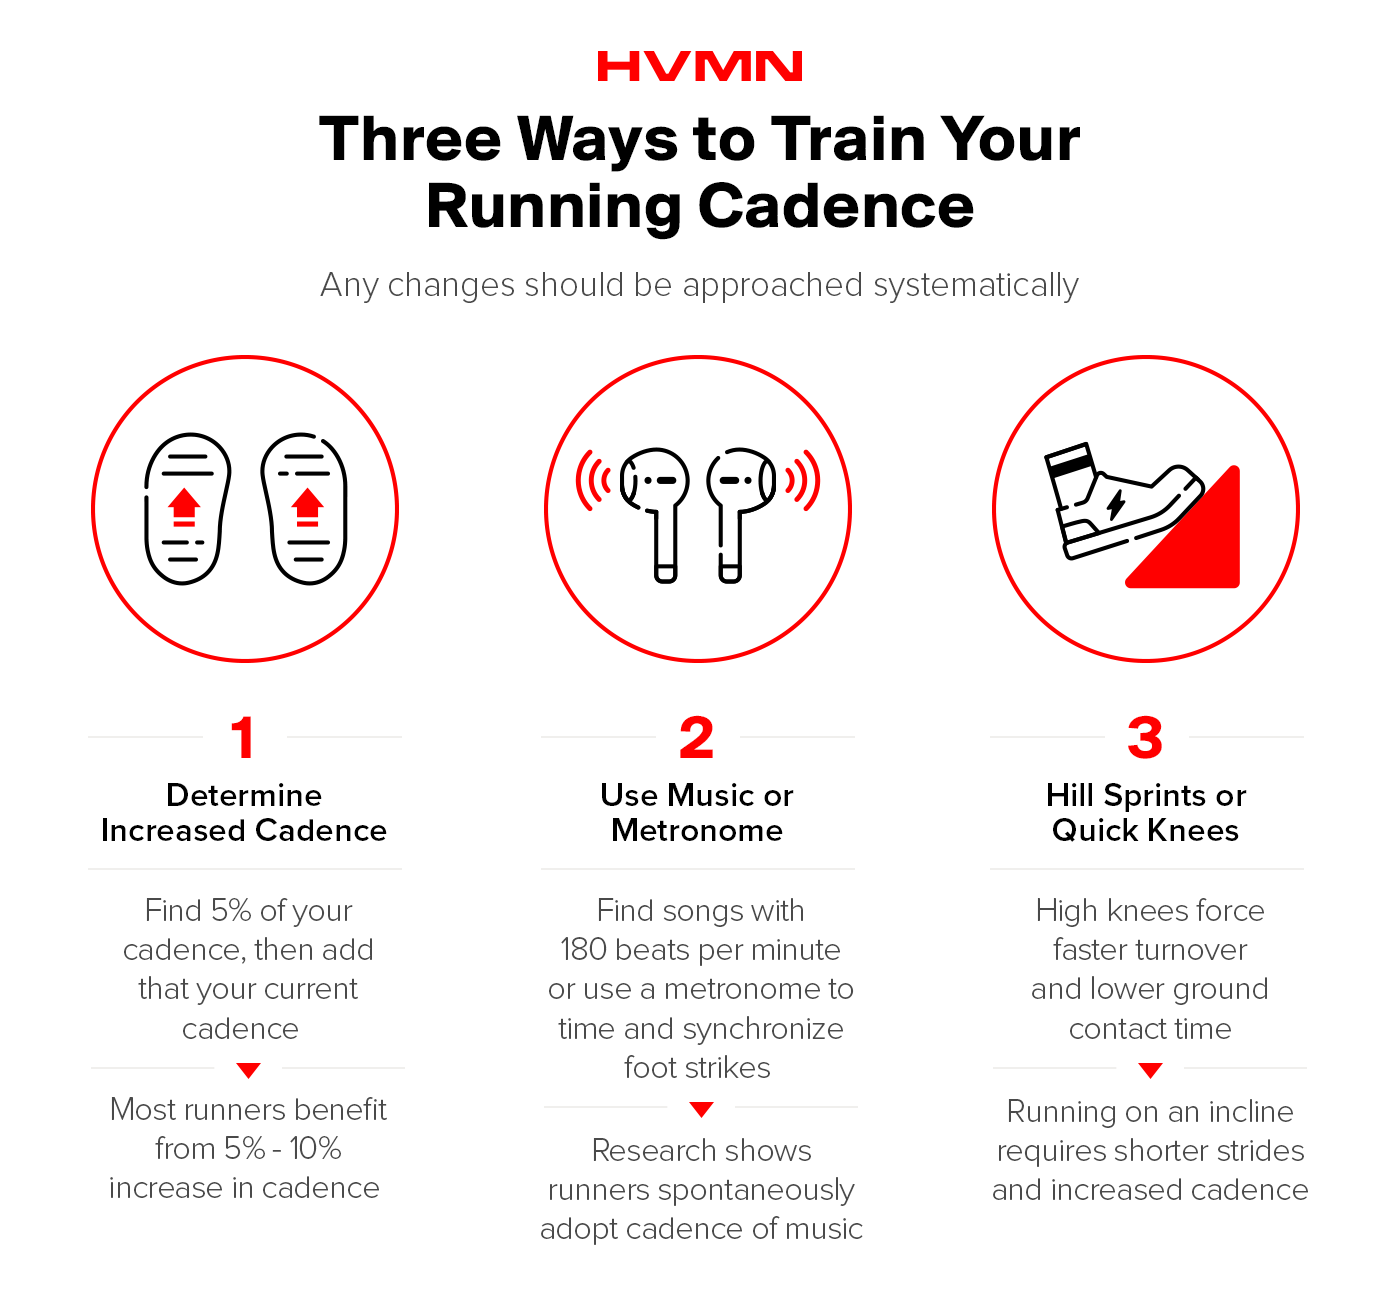 Three illustrations showing ways to train your running cadence: feet for increase cadence, headphones for using music, and a shoe running uphill to show hill sprints